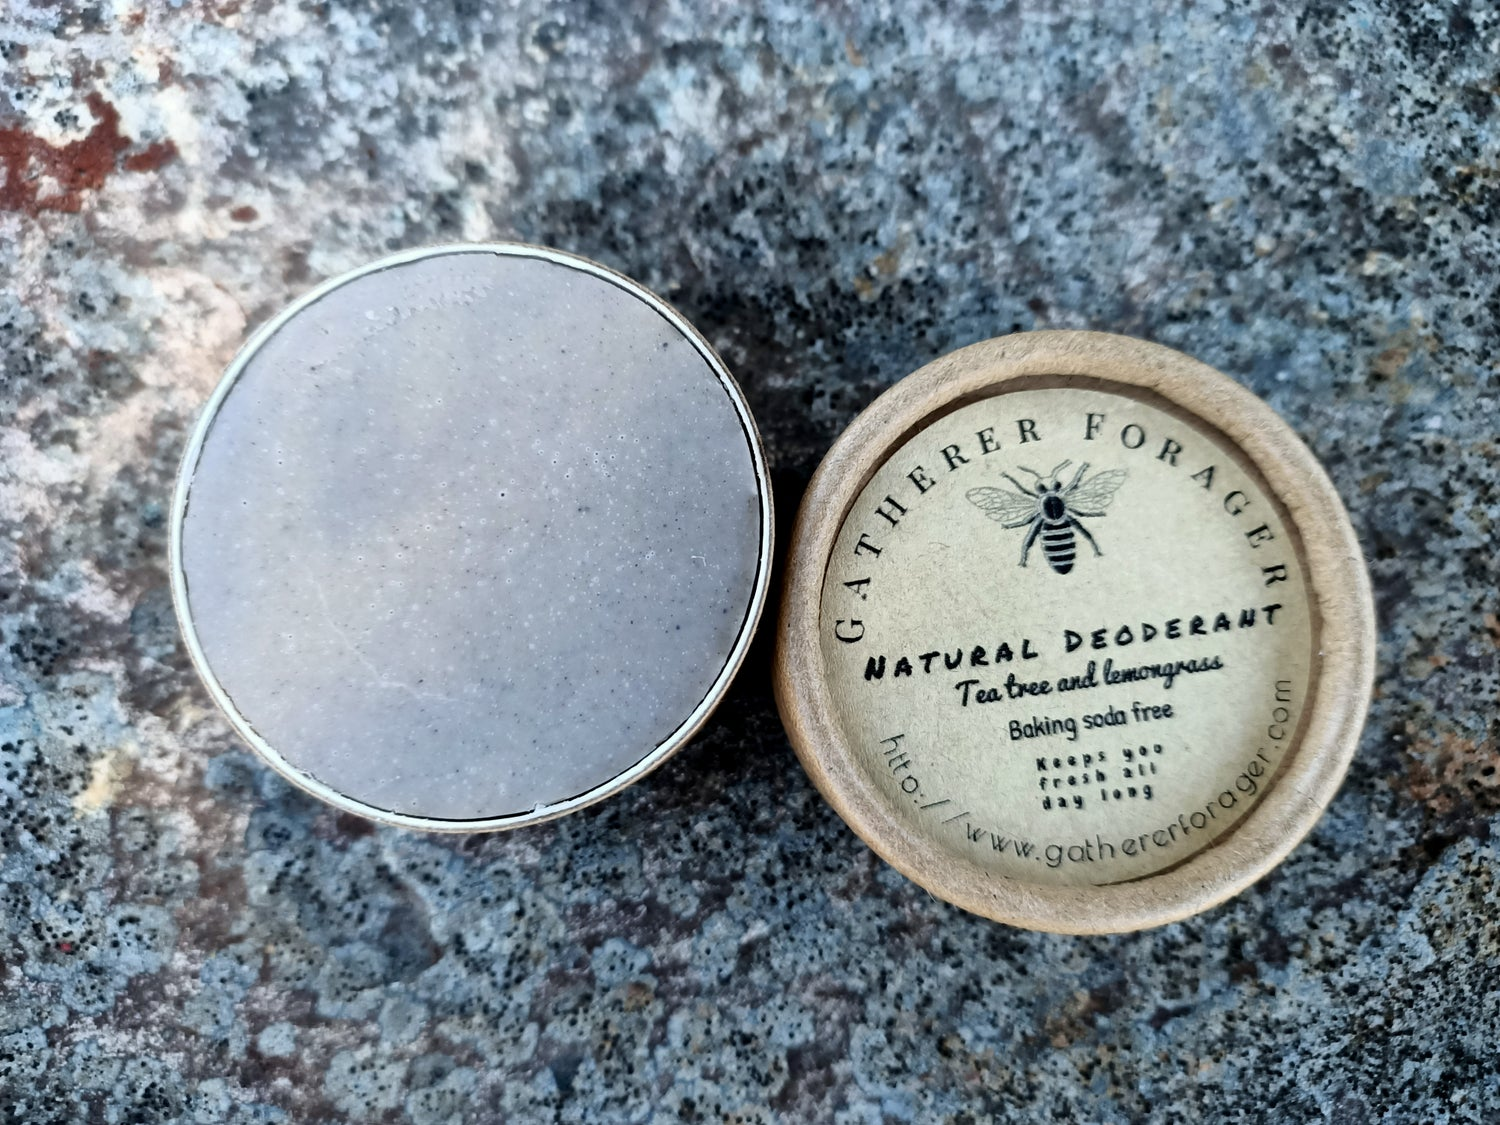 Image of Bicarb free Natural deodorant